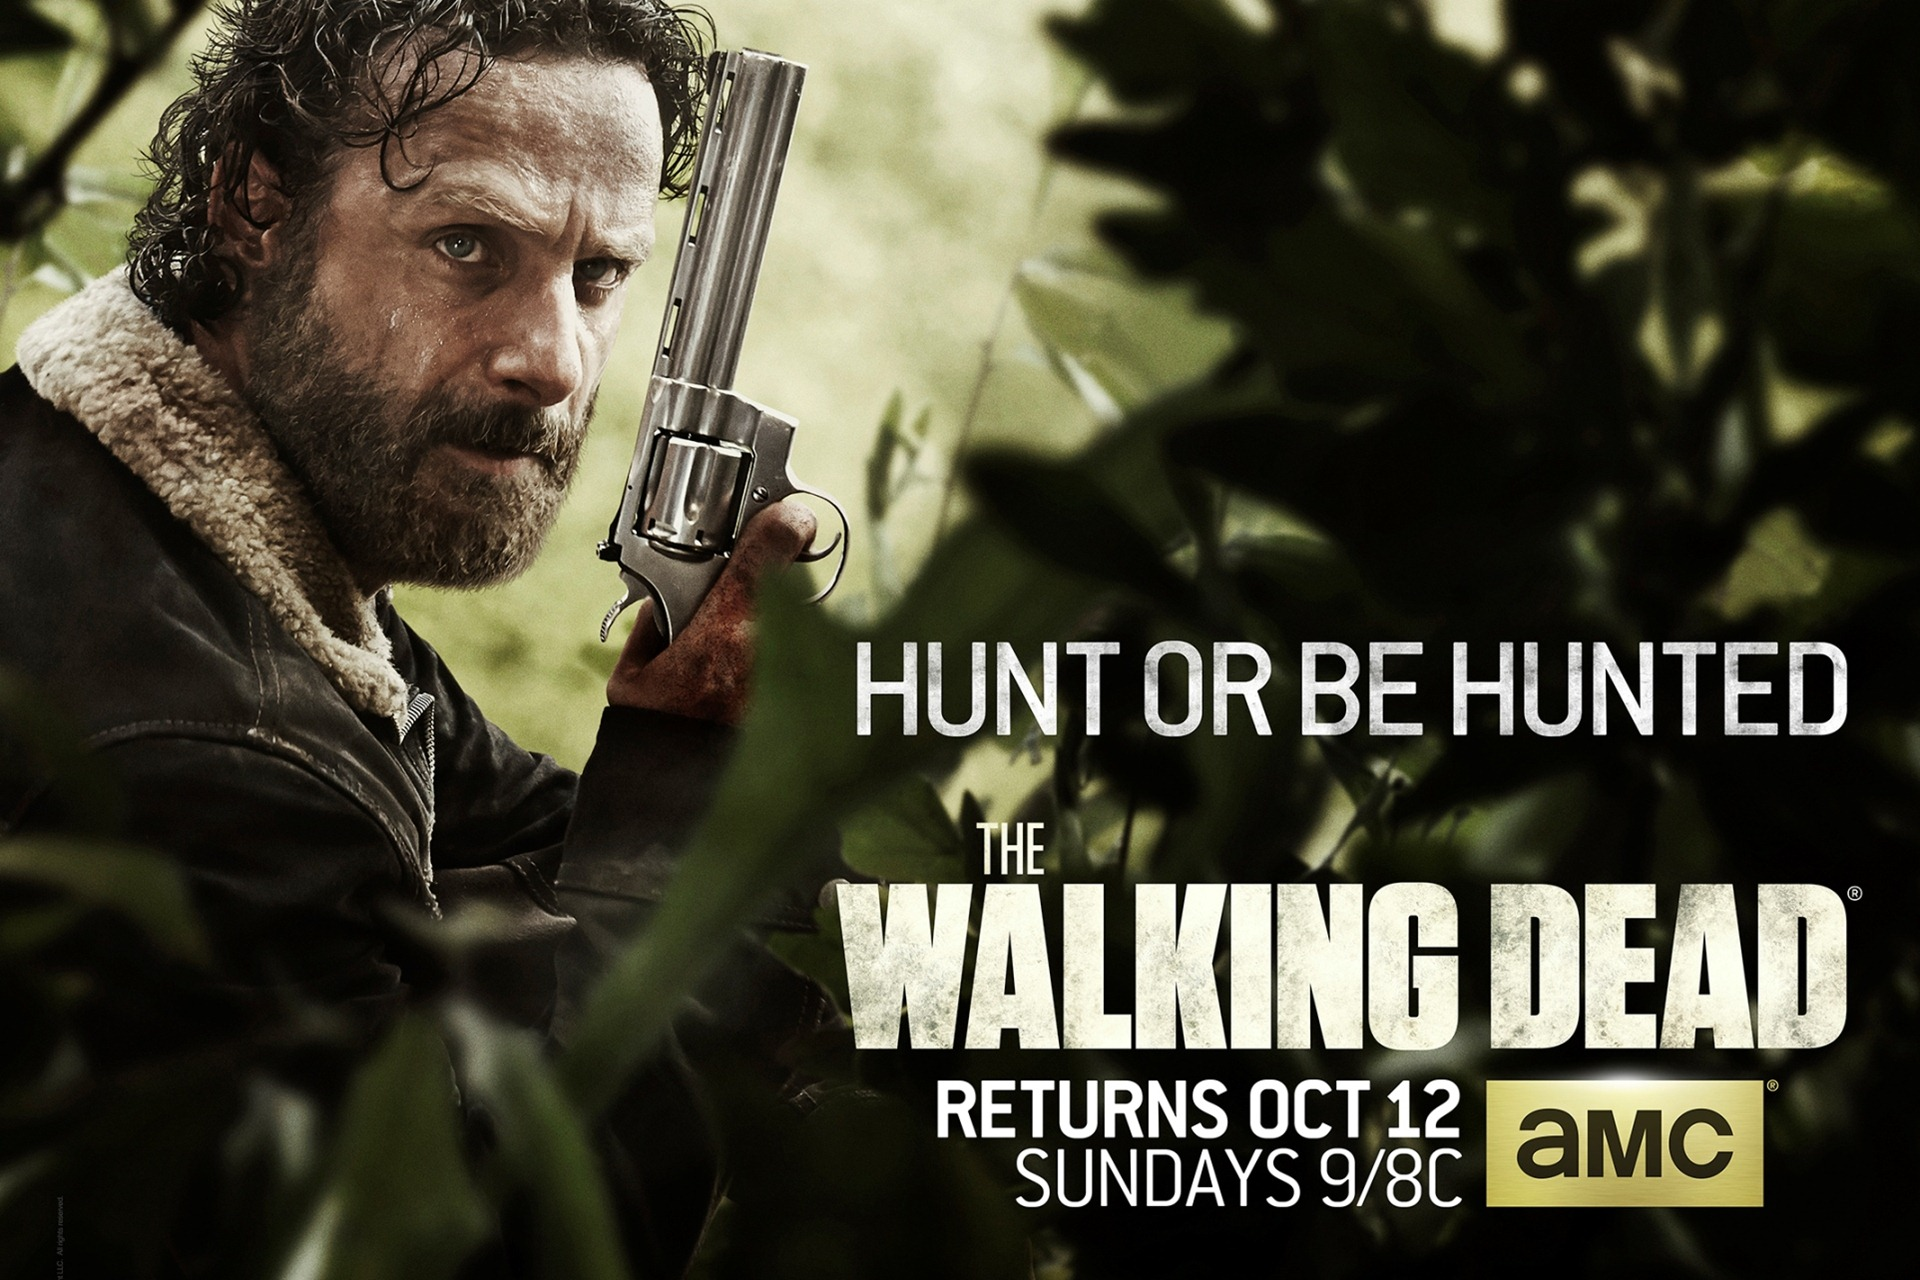 The Walking Dead Season 9 Wallpaper Posted By Sarah Simpson